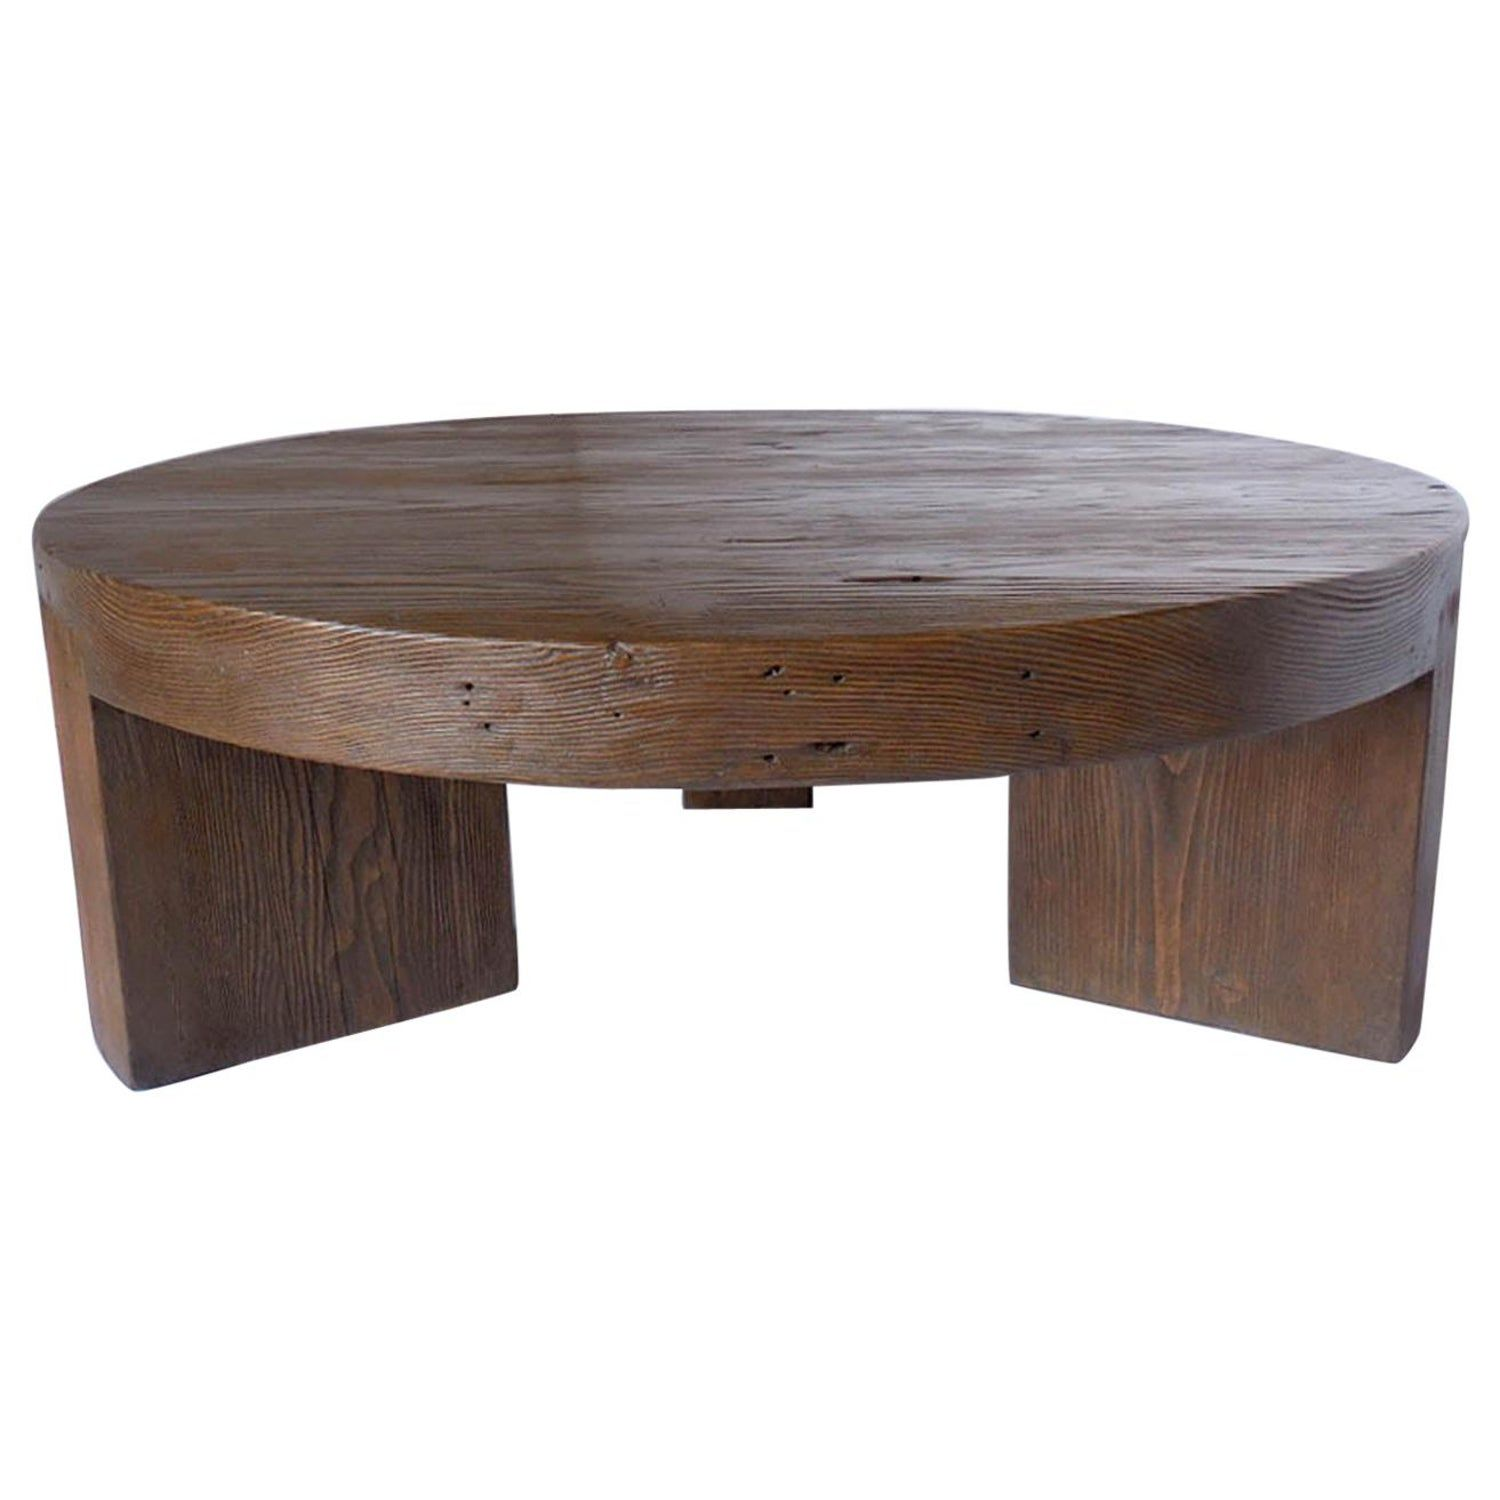 Round Reclaimed Wood Coffee Table Coffee Table Reclaimed Coffee Table Reclaimed Wood Coffee Table [ 1500 x 1500 Pixel ]